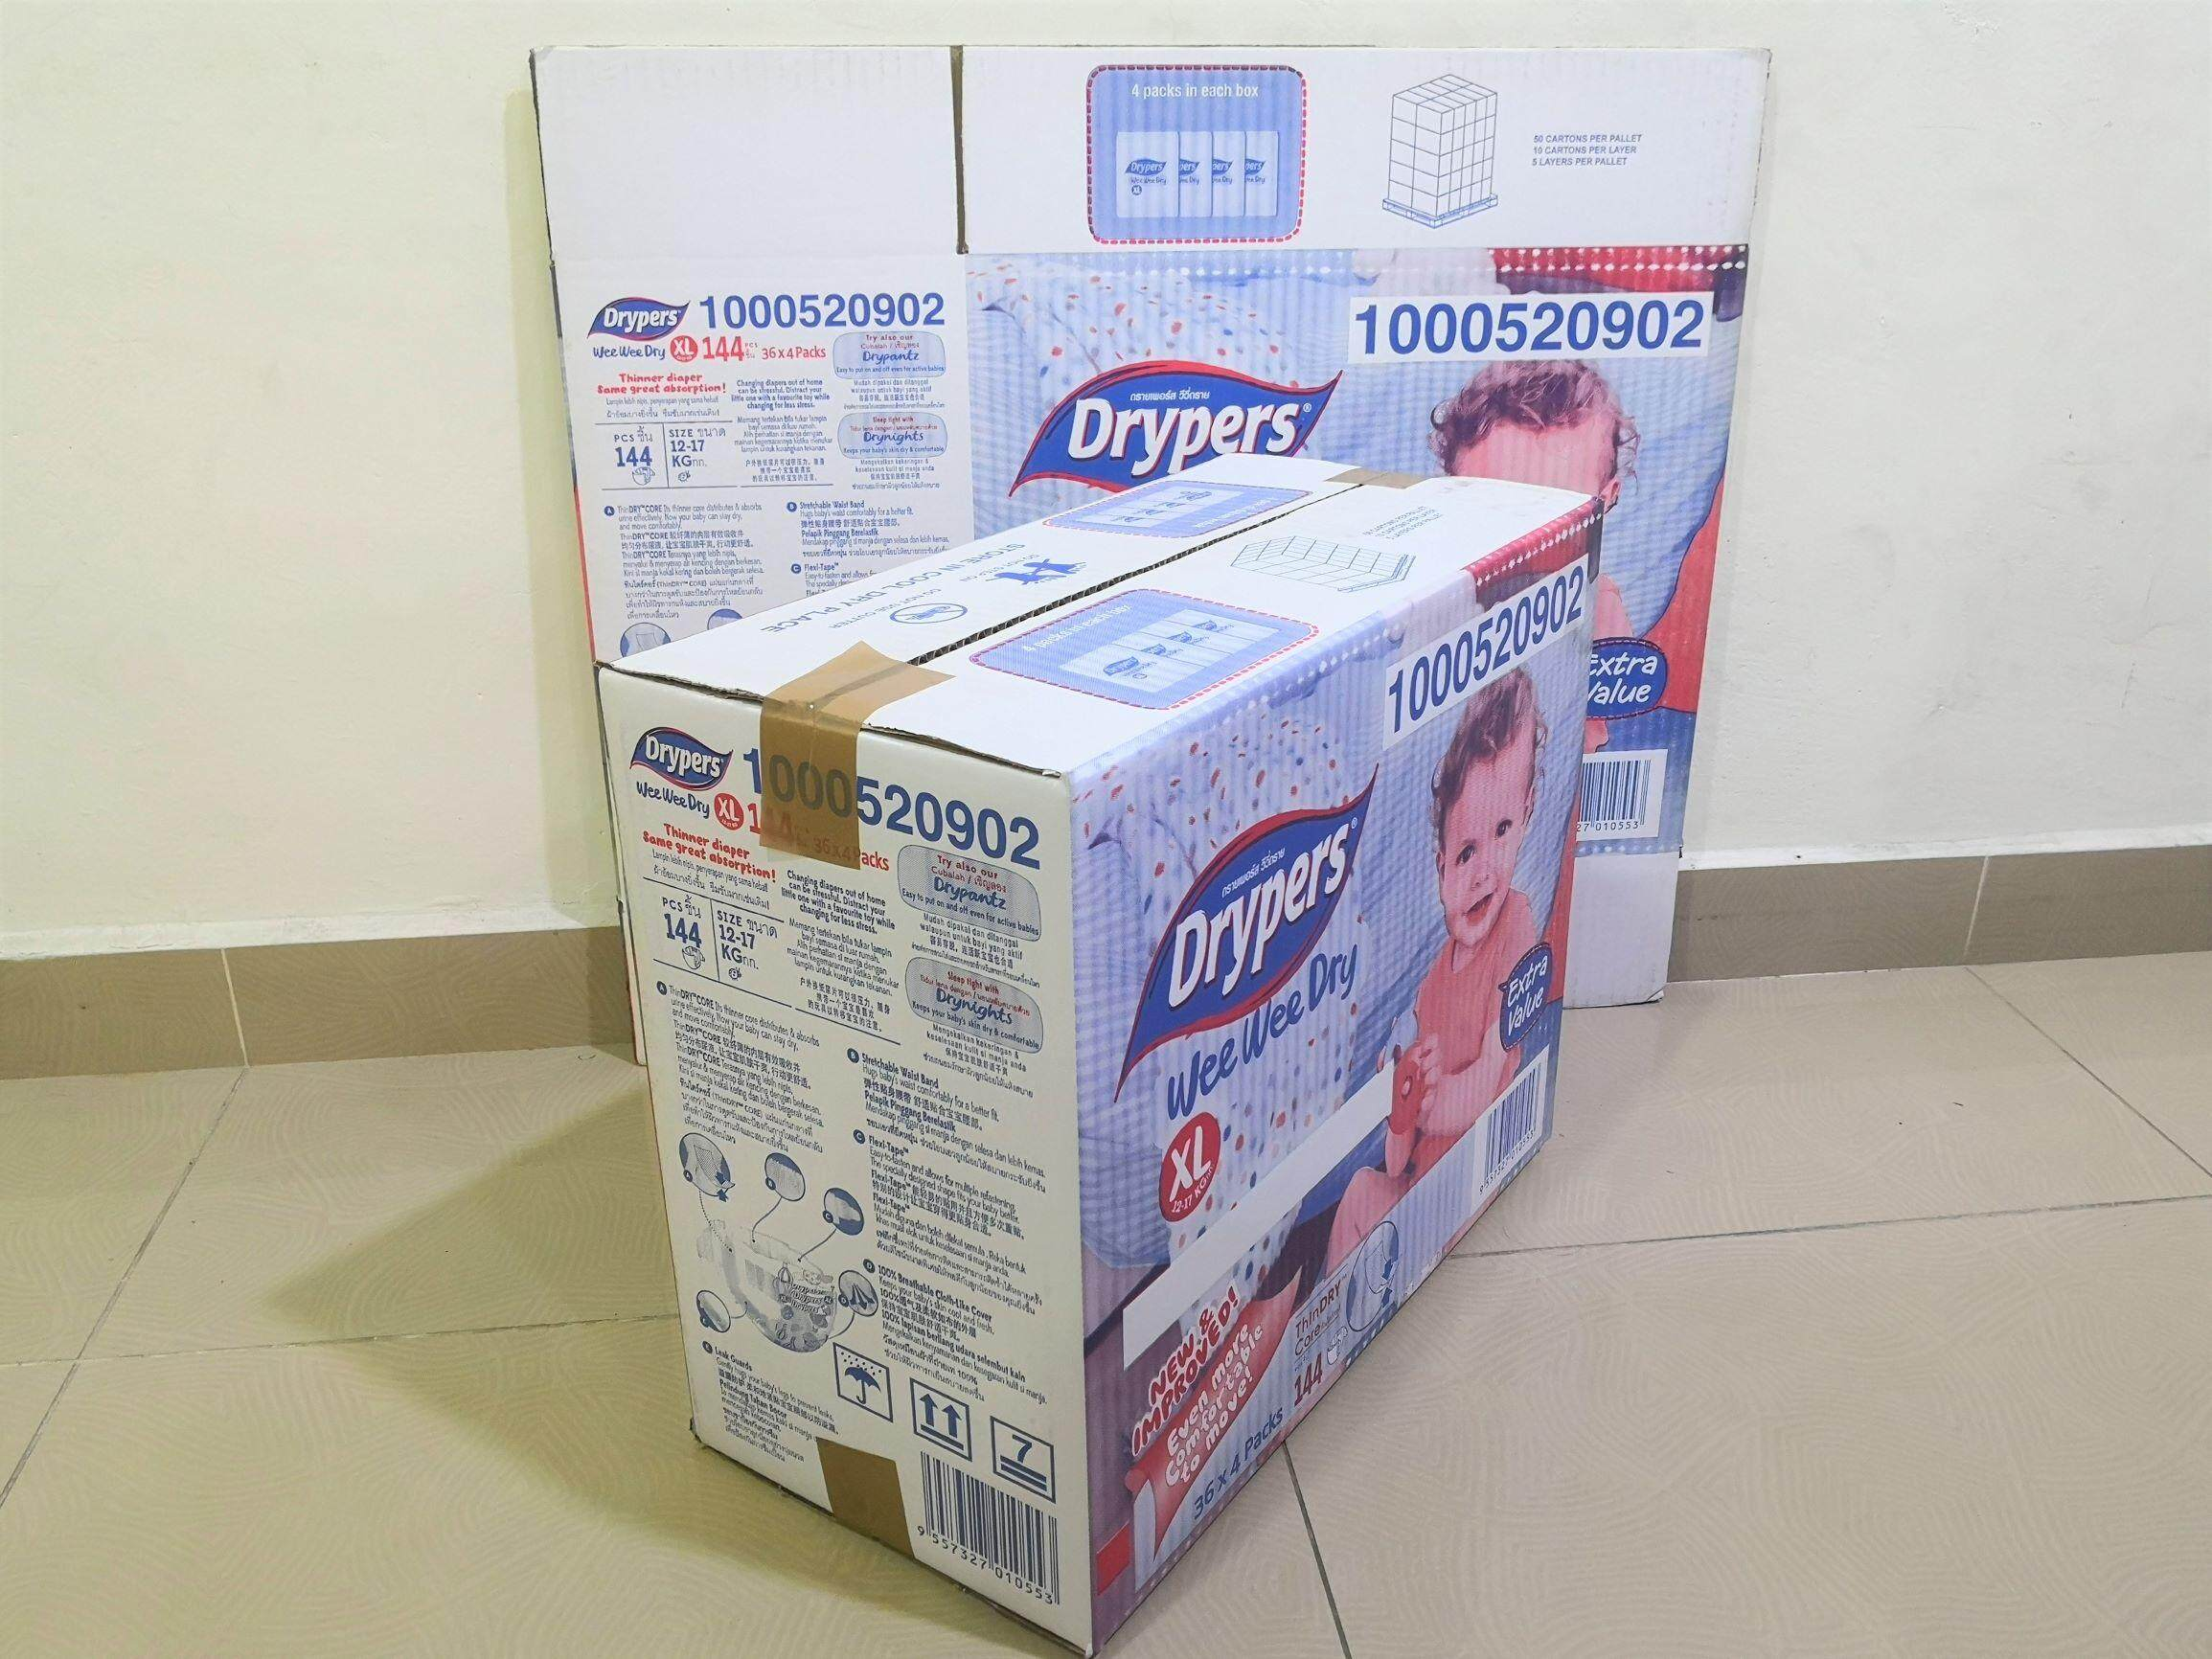 10pcs Printed Carton Boxes (L476 X W232 X H393 mm)